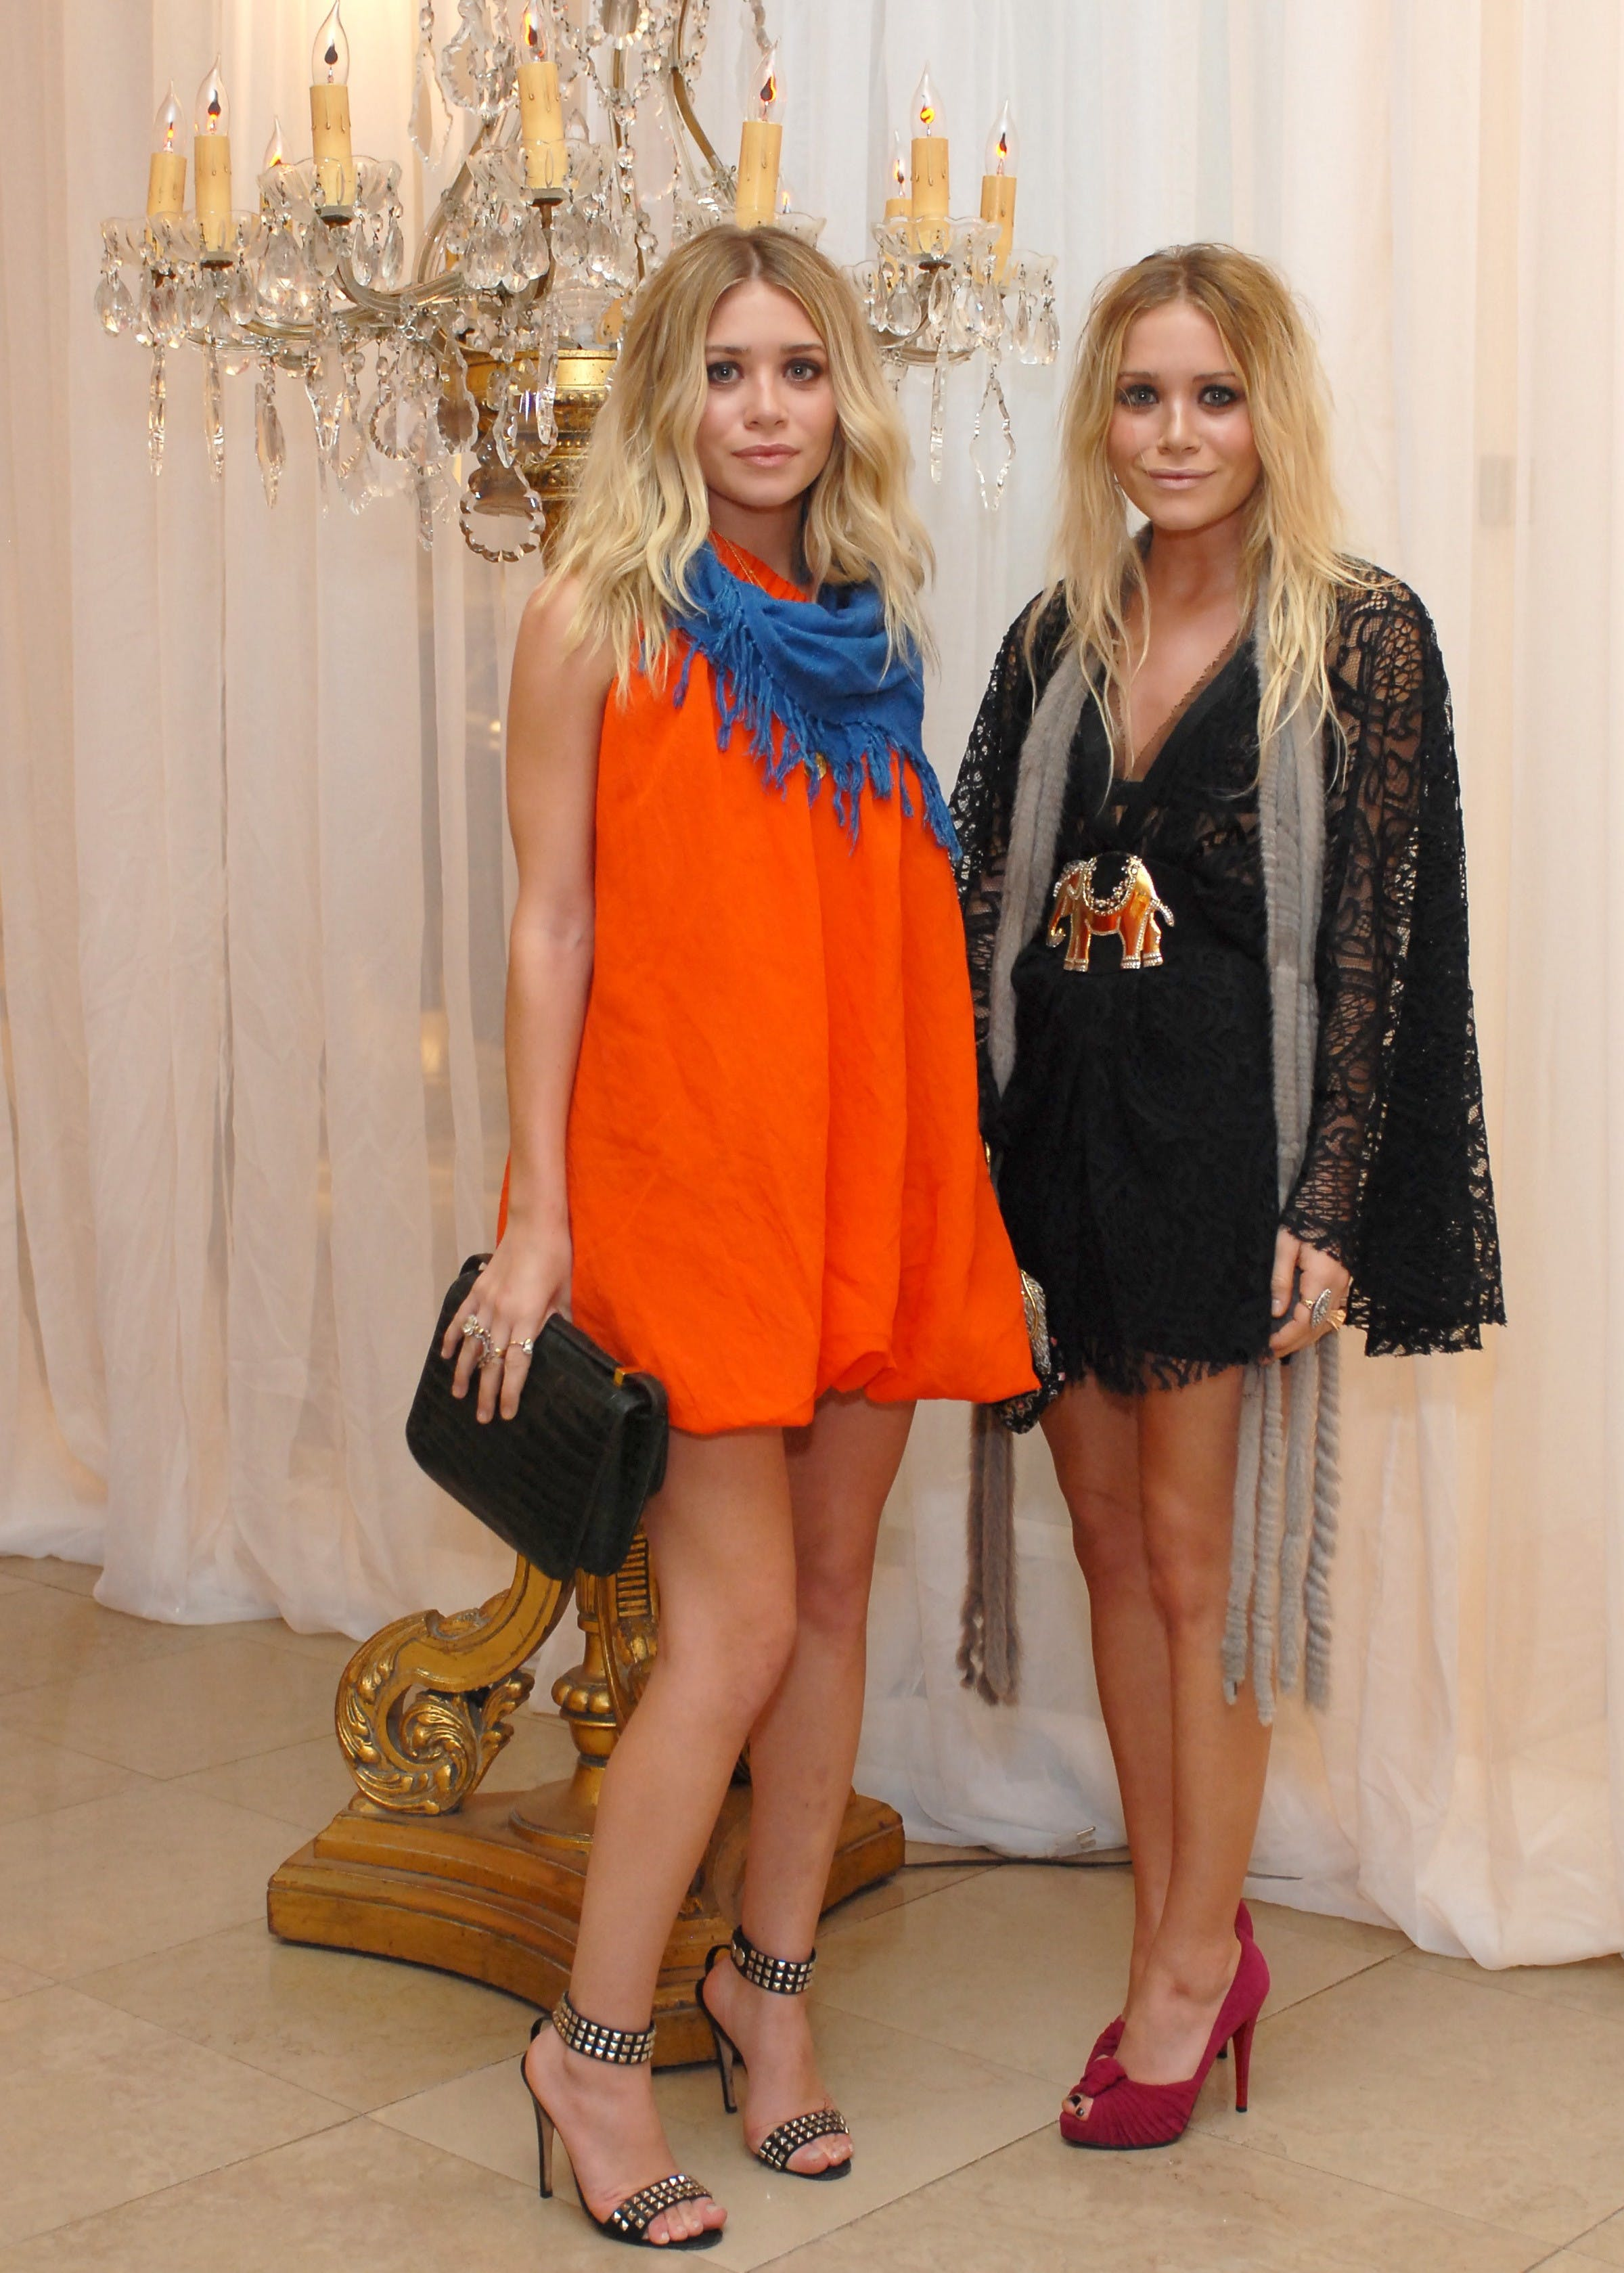 mary kate and ashley olsen in 2007